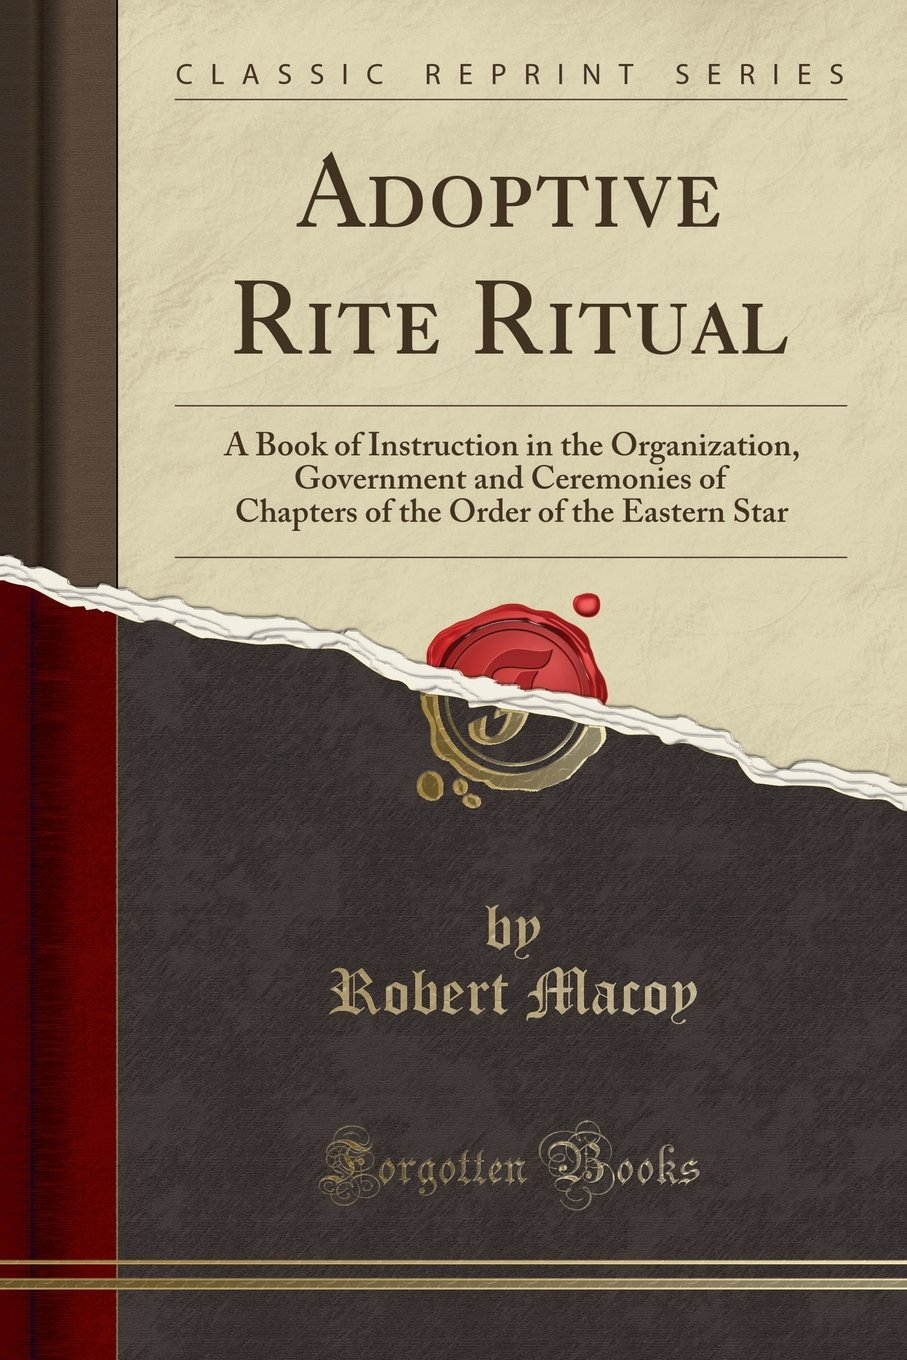 Adoptive Rite Ritual: A Book of Instruction in the Organization, Government and Ceremonies of Chapters of the Order of the Eastern Star (Classic Reprint)